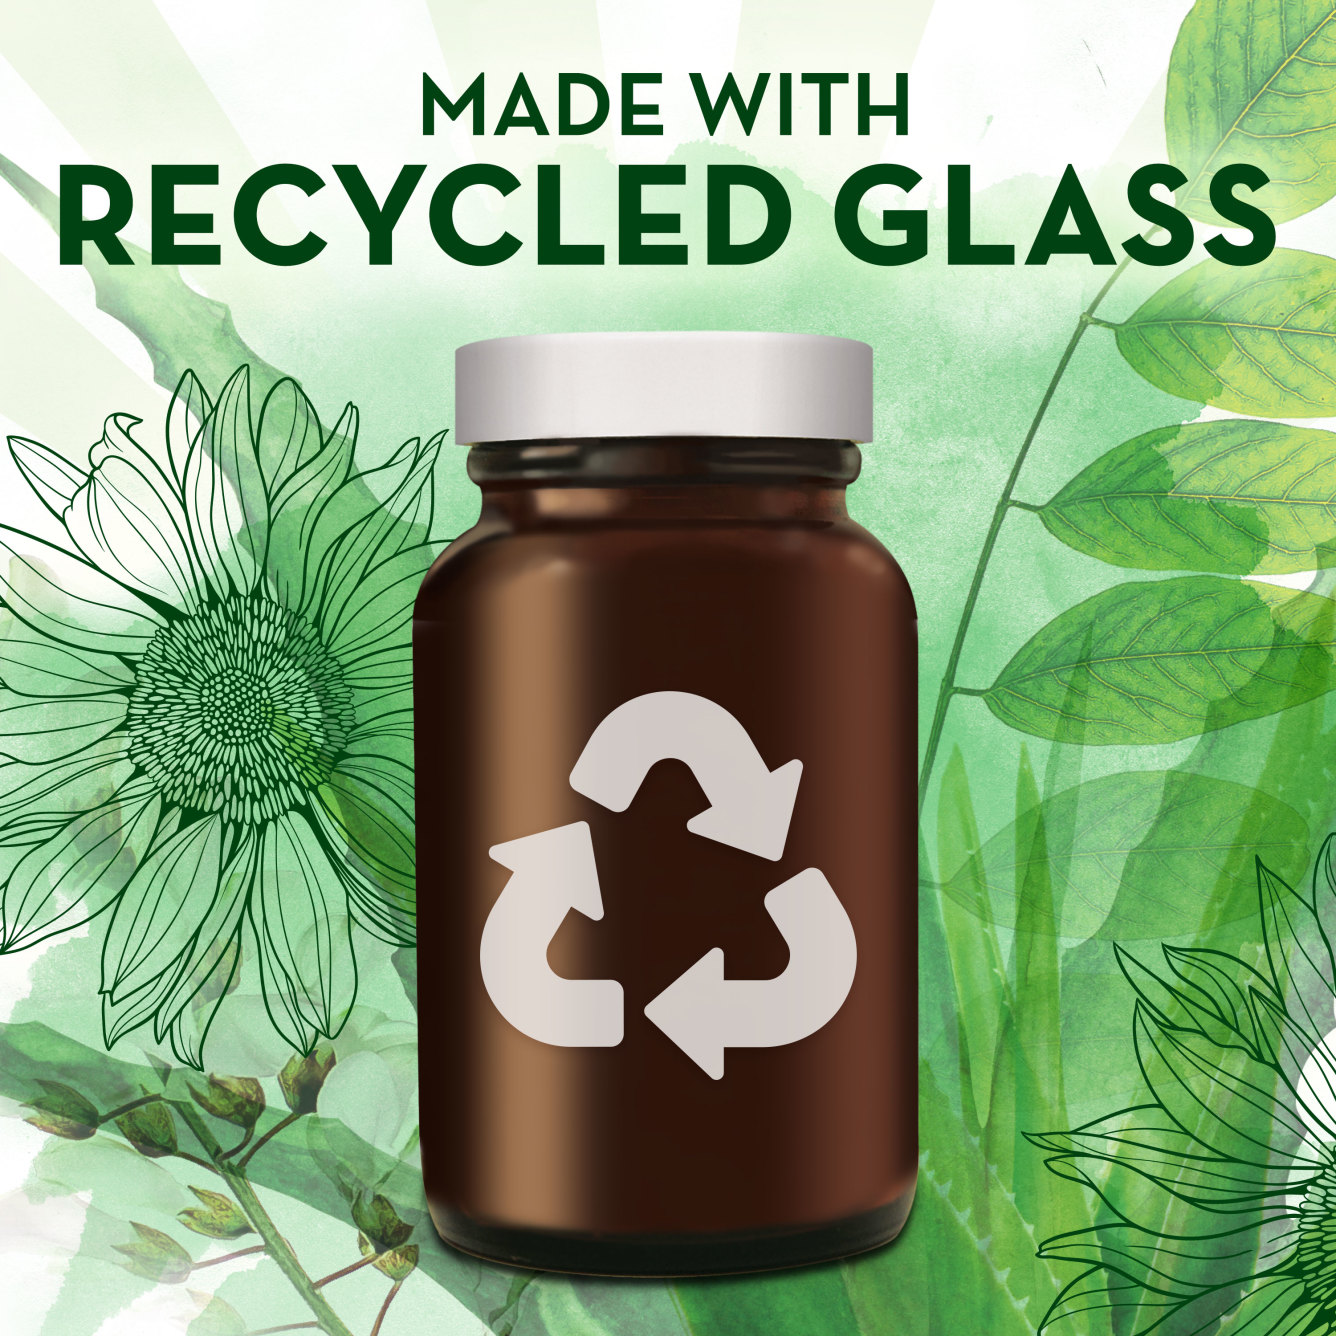 Whole food made with recycled glass